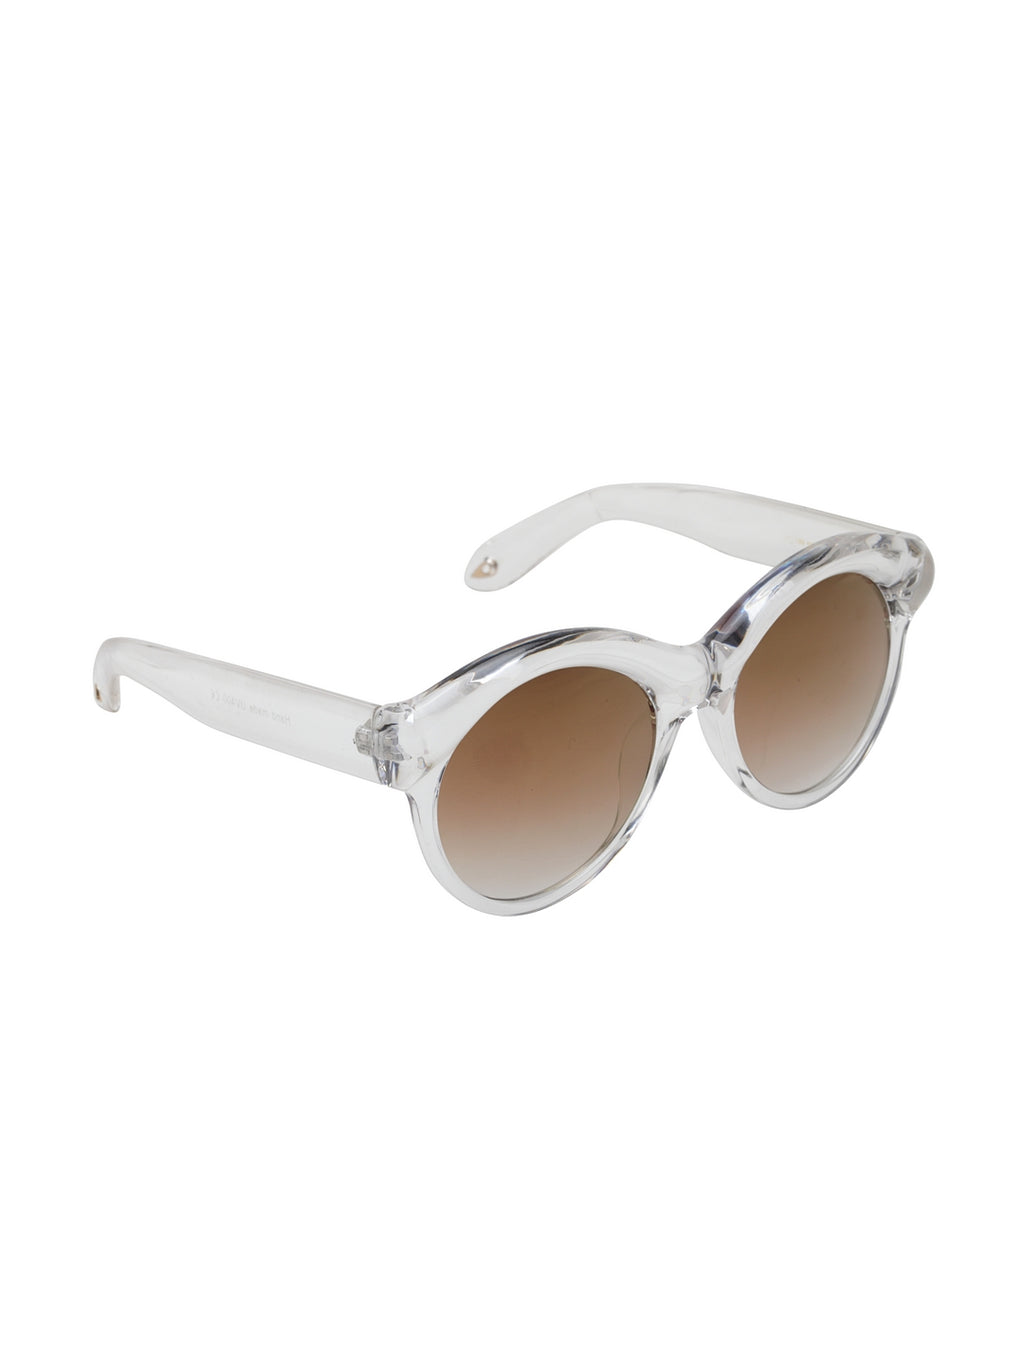 Avant-Garde Paris Cool Fashion Steampunk Sunglasses